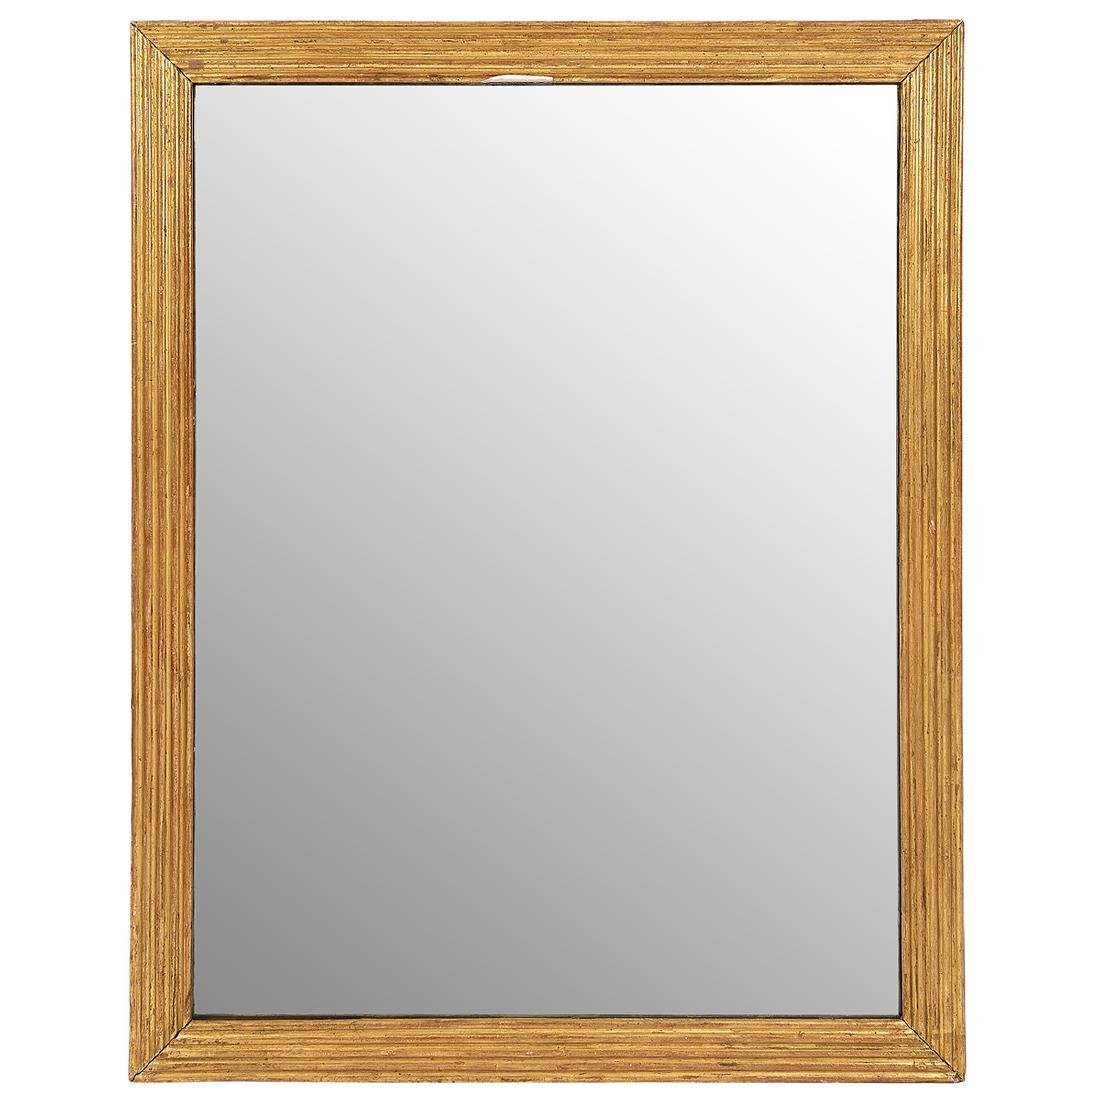 Empire Style rectangular wall mirror